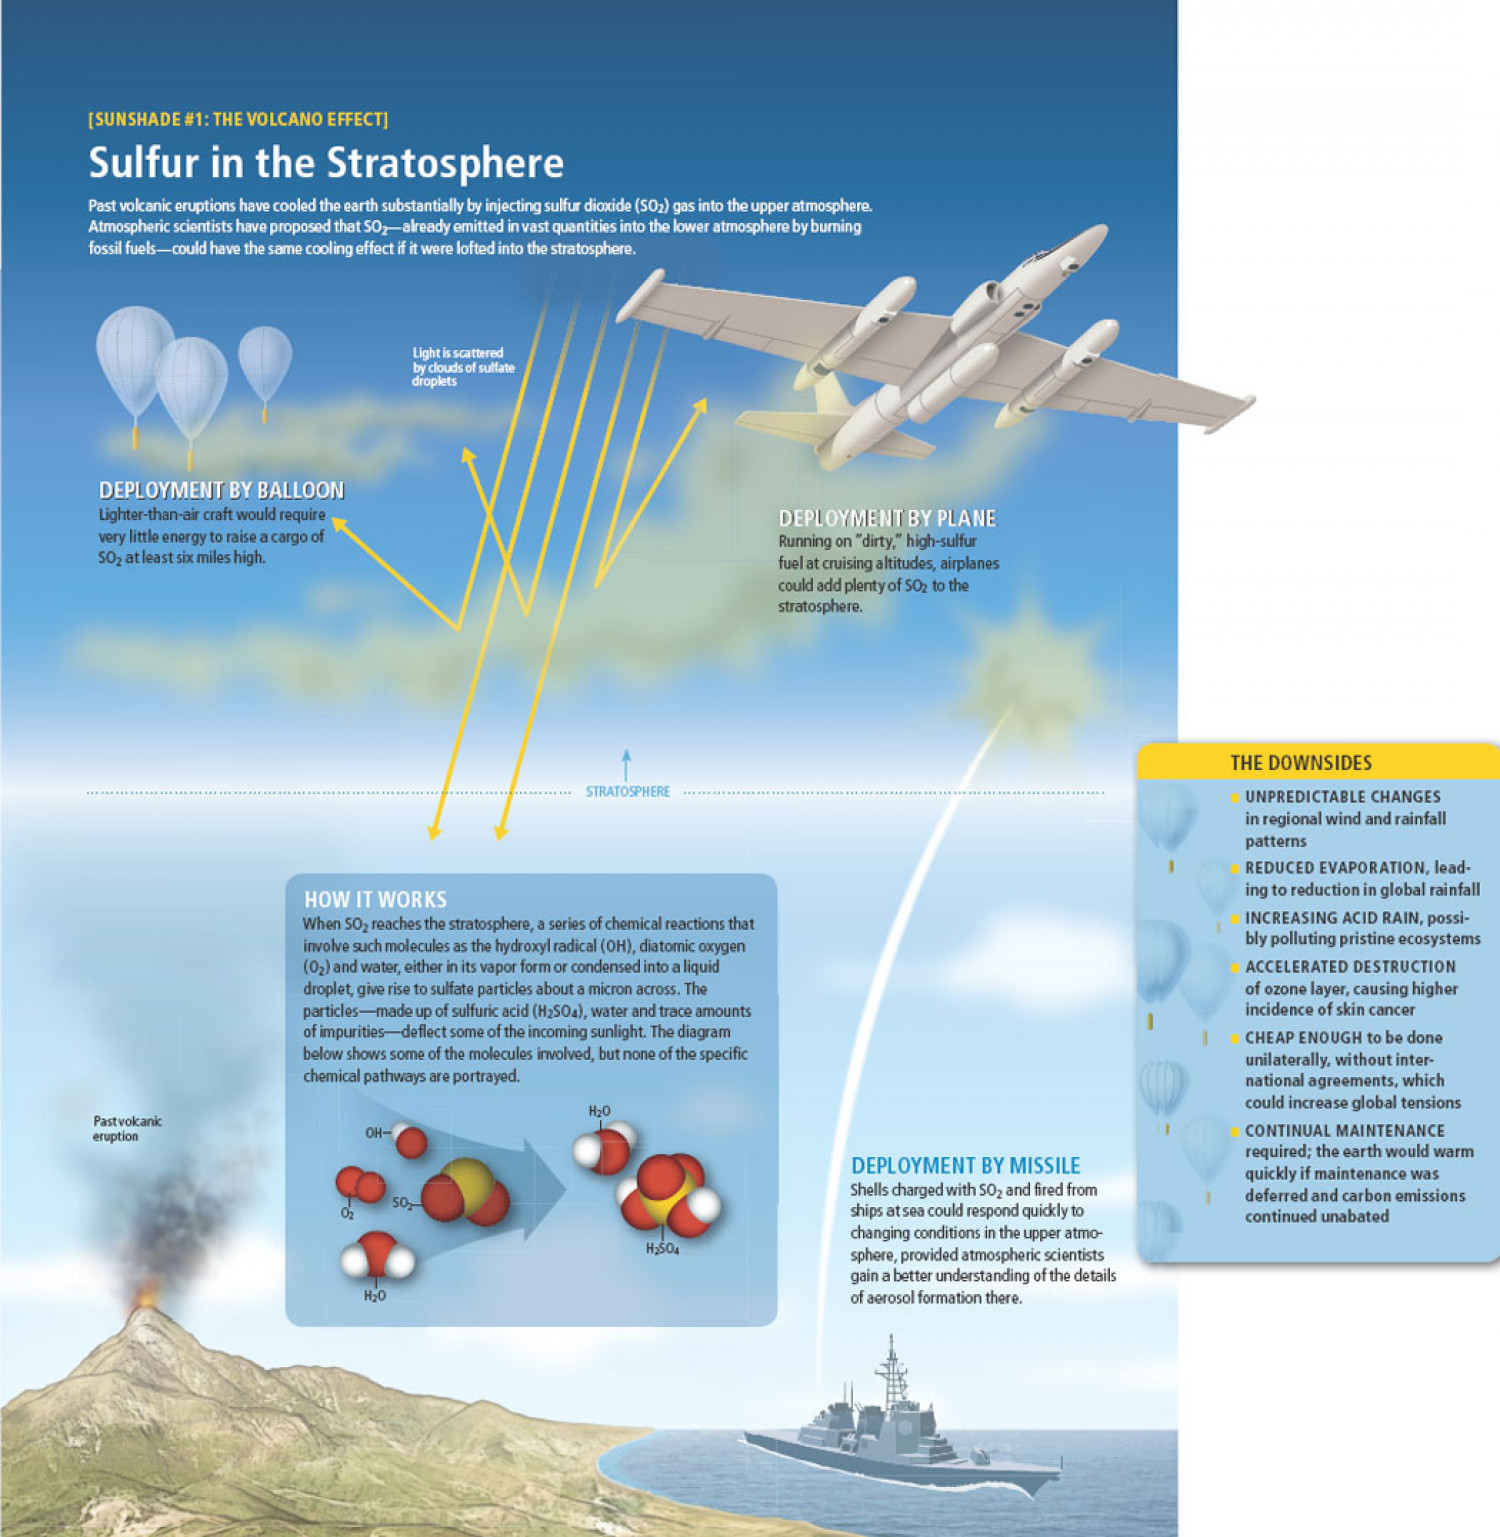 Sulfur in the Stratosphere Infographic